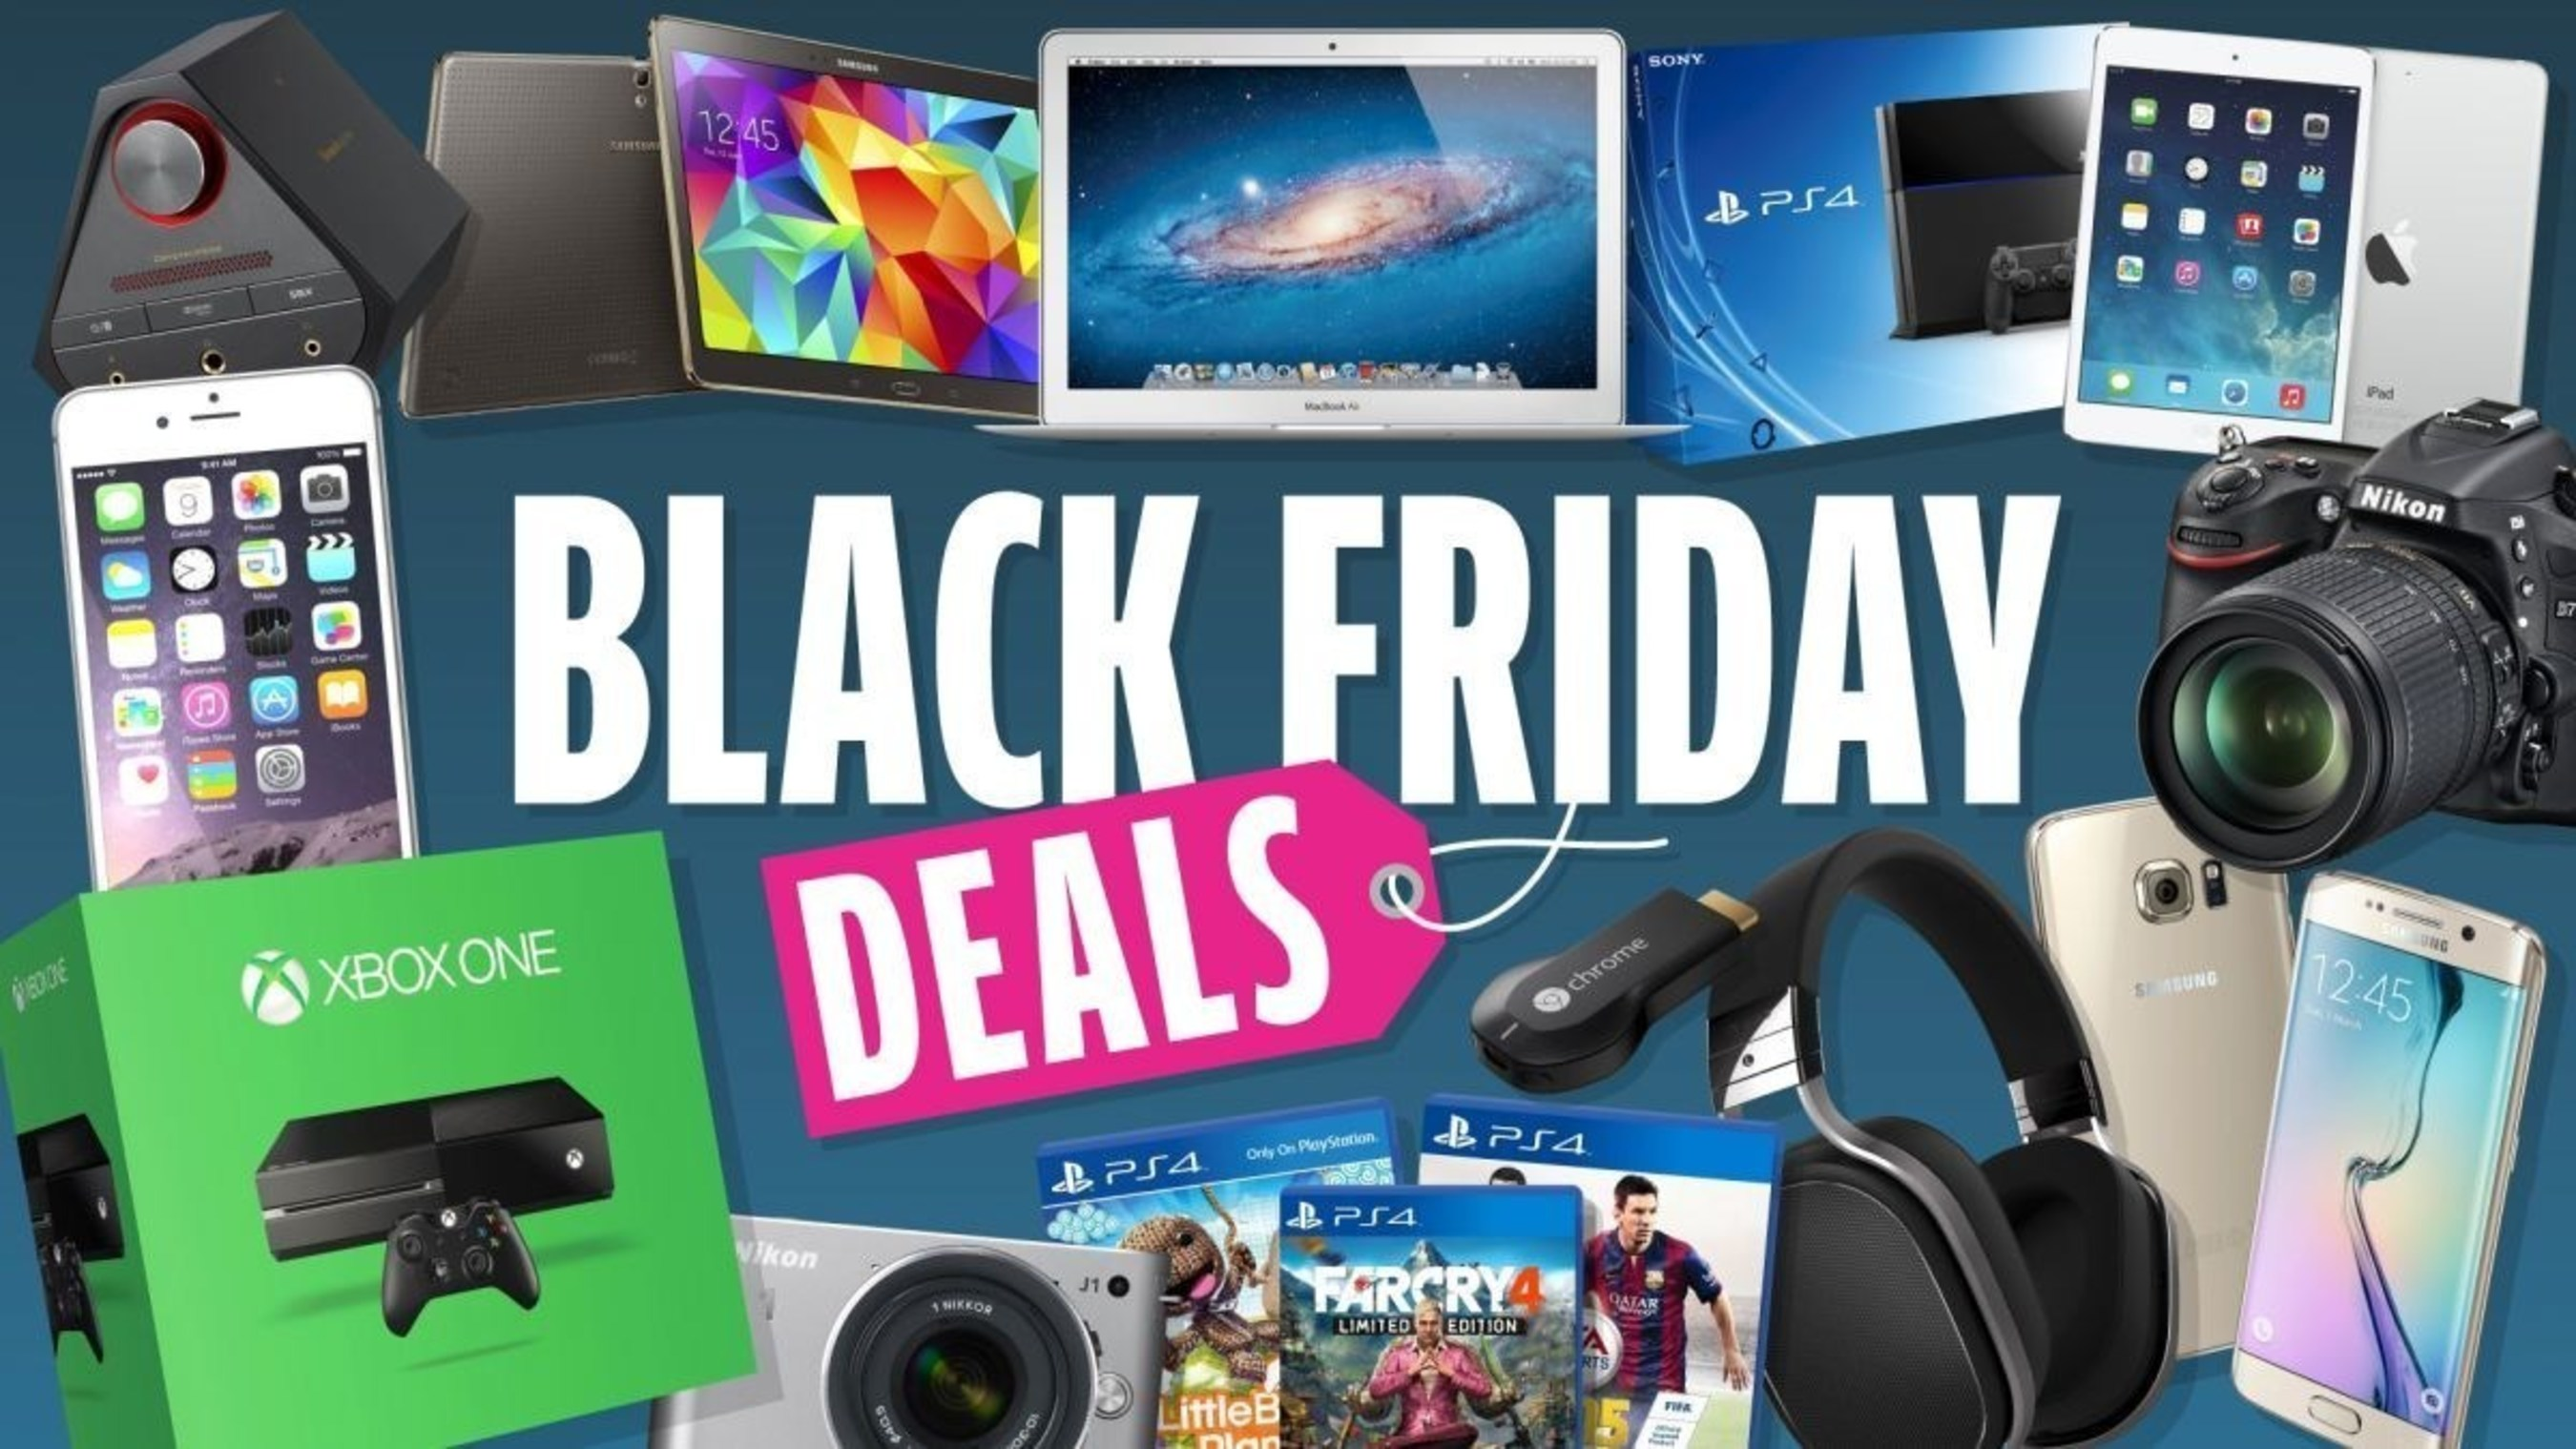 Top 10 Best Black Friday TV Deals 2015 Have Been Released by Hideal.net